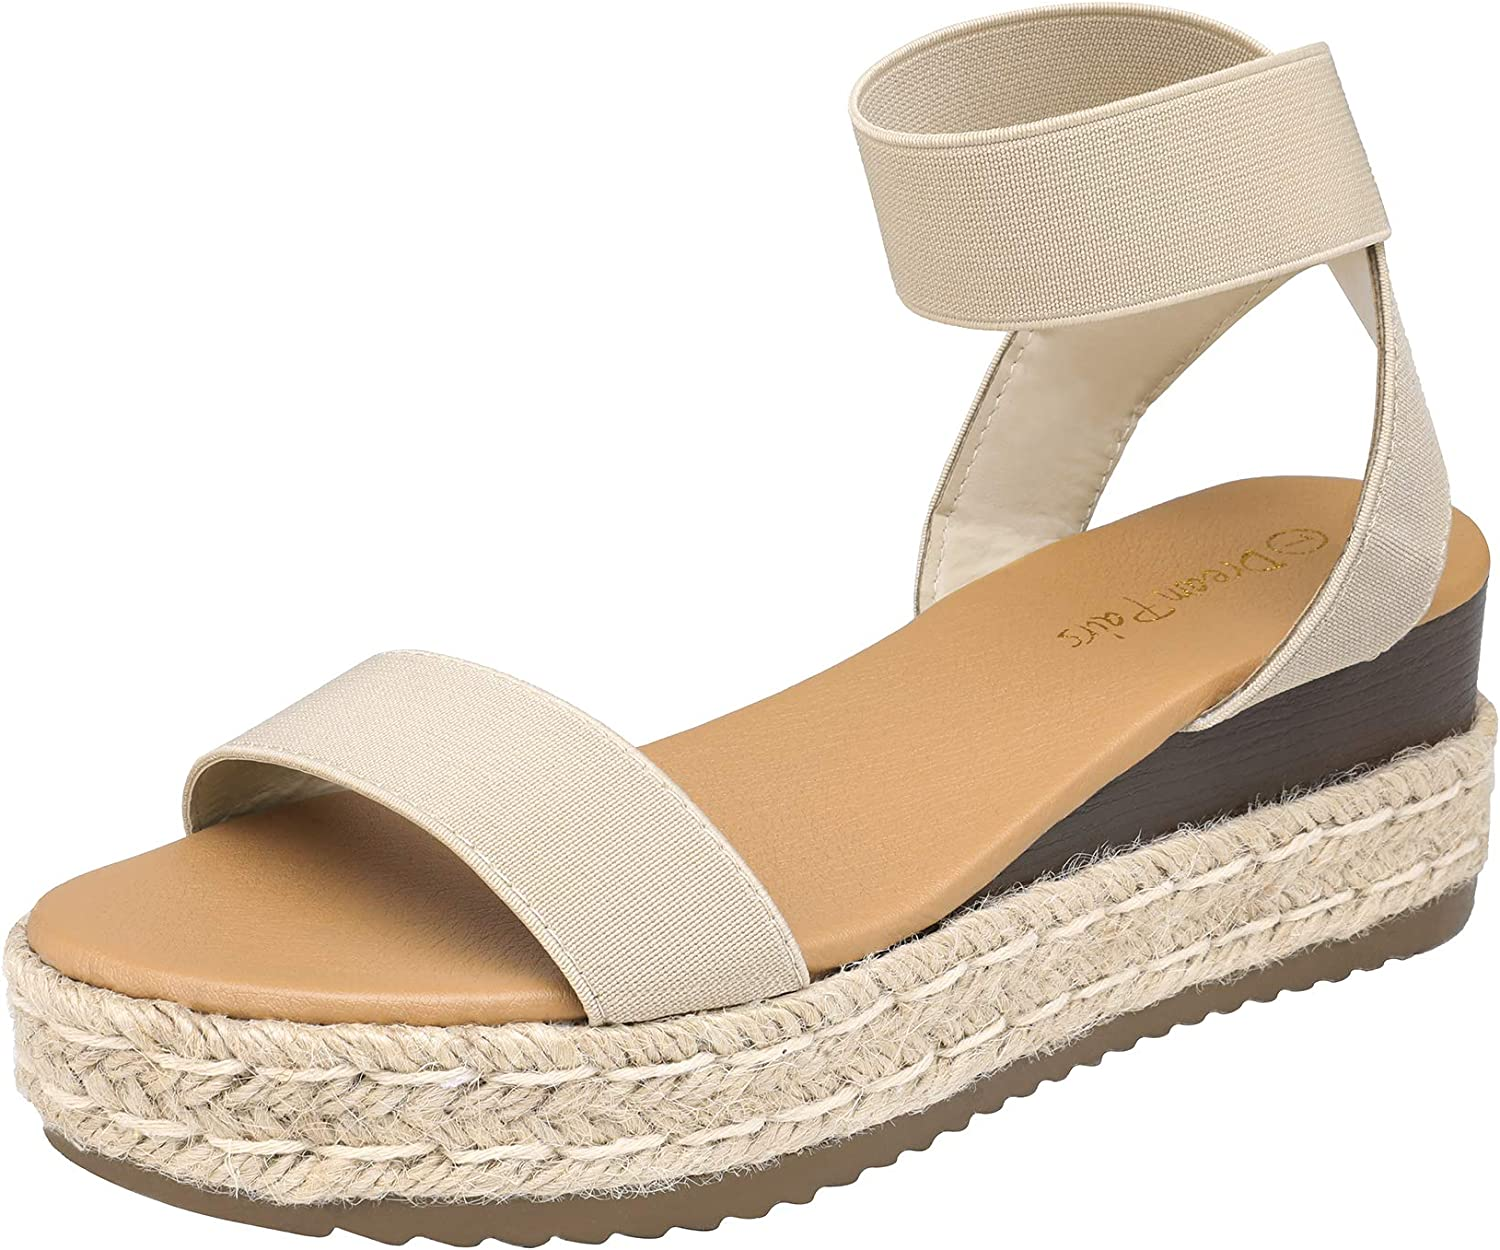 NEW before selling DREAM PAIRS Women's Ankle Max 44% OFF Strap Platform Wedges Espadrilles Sand